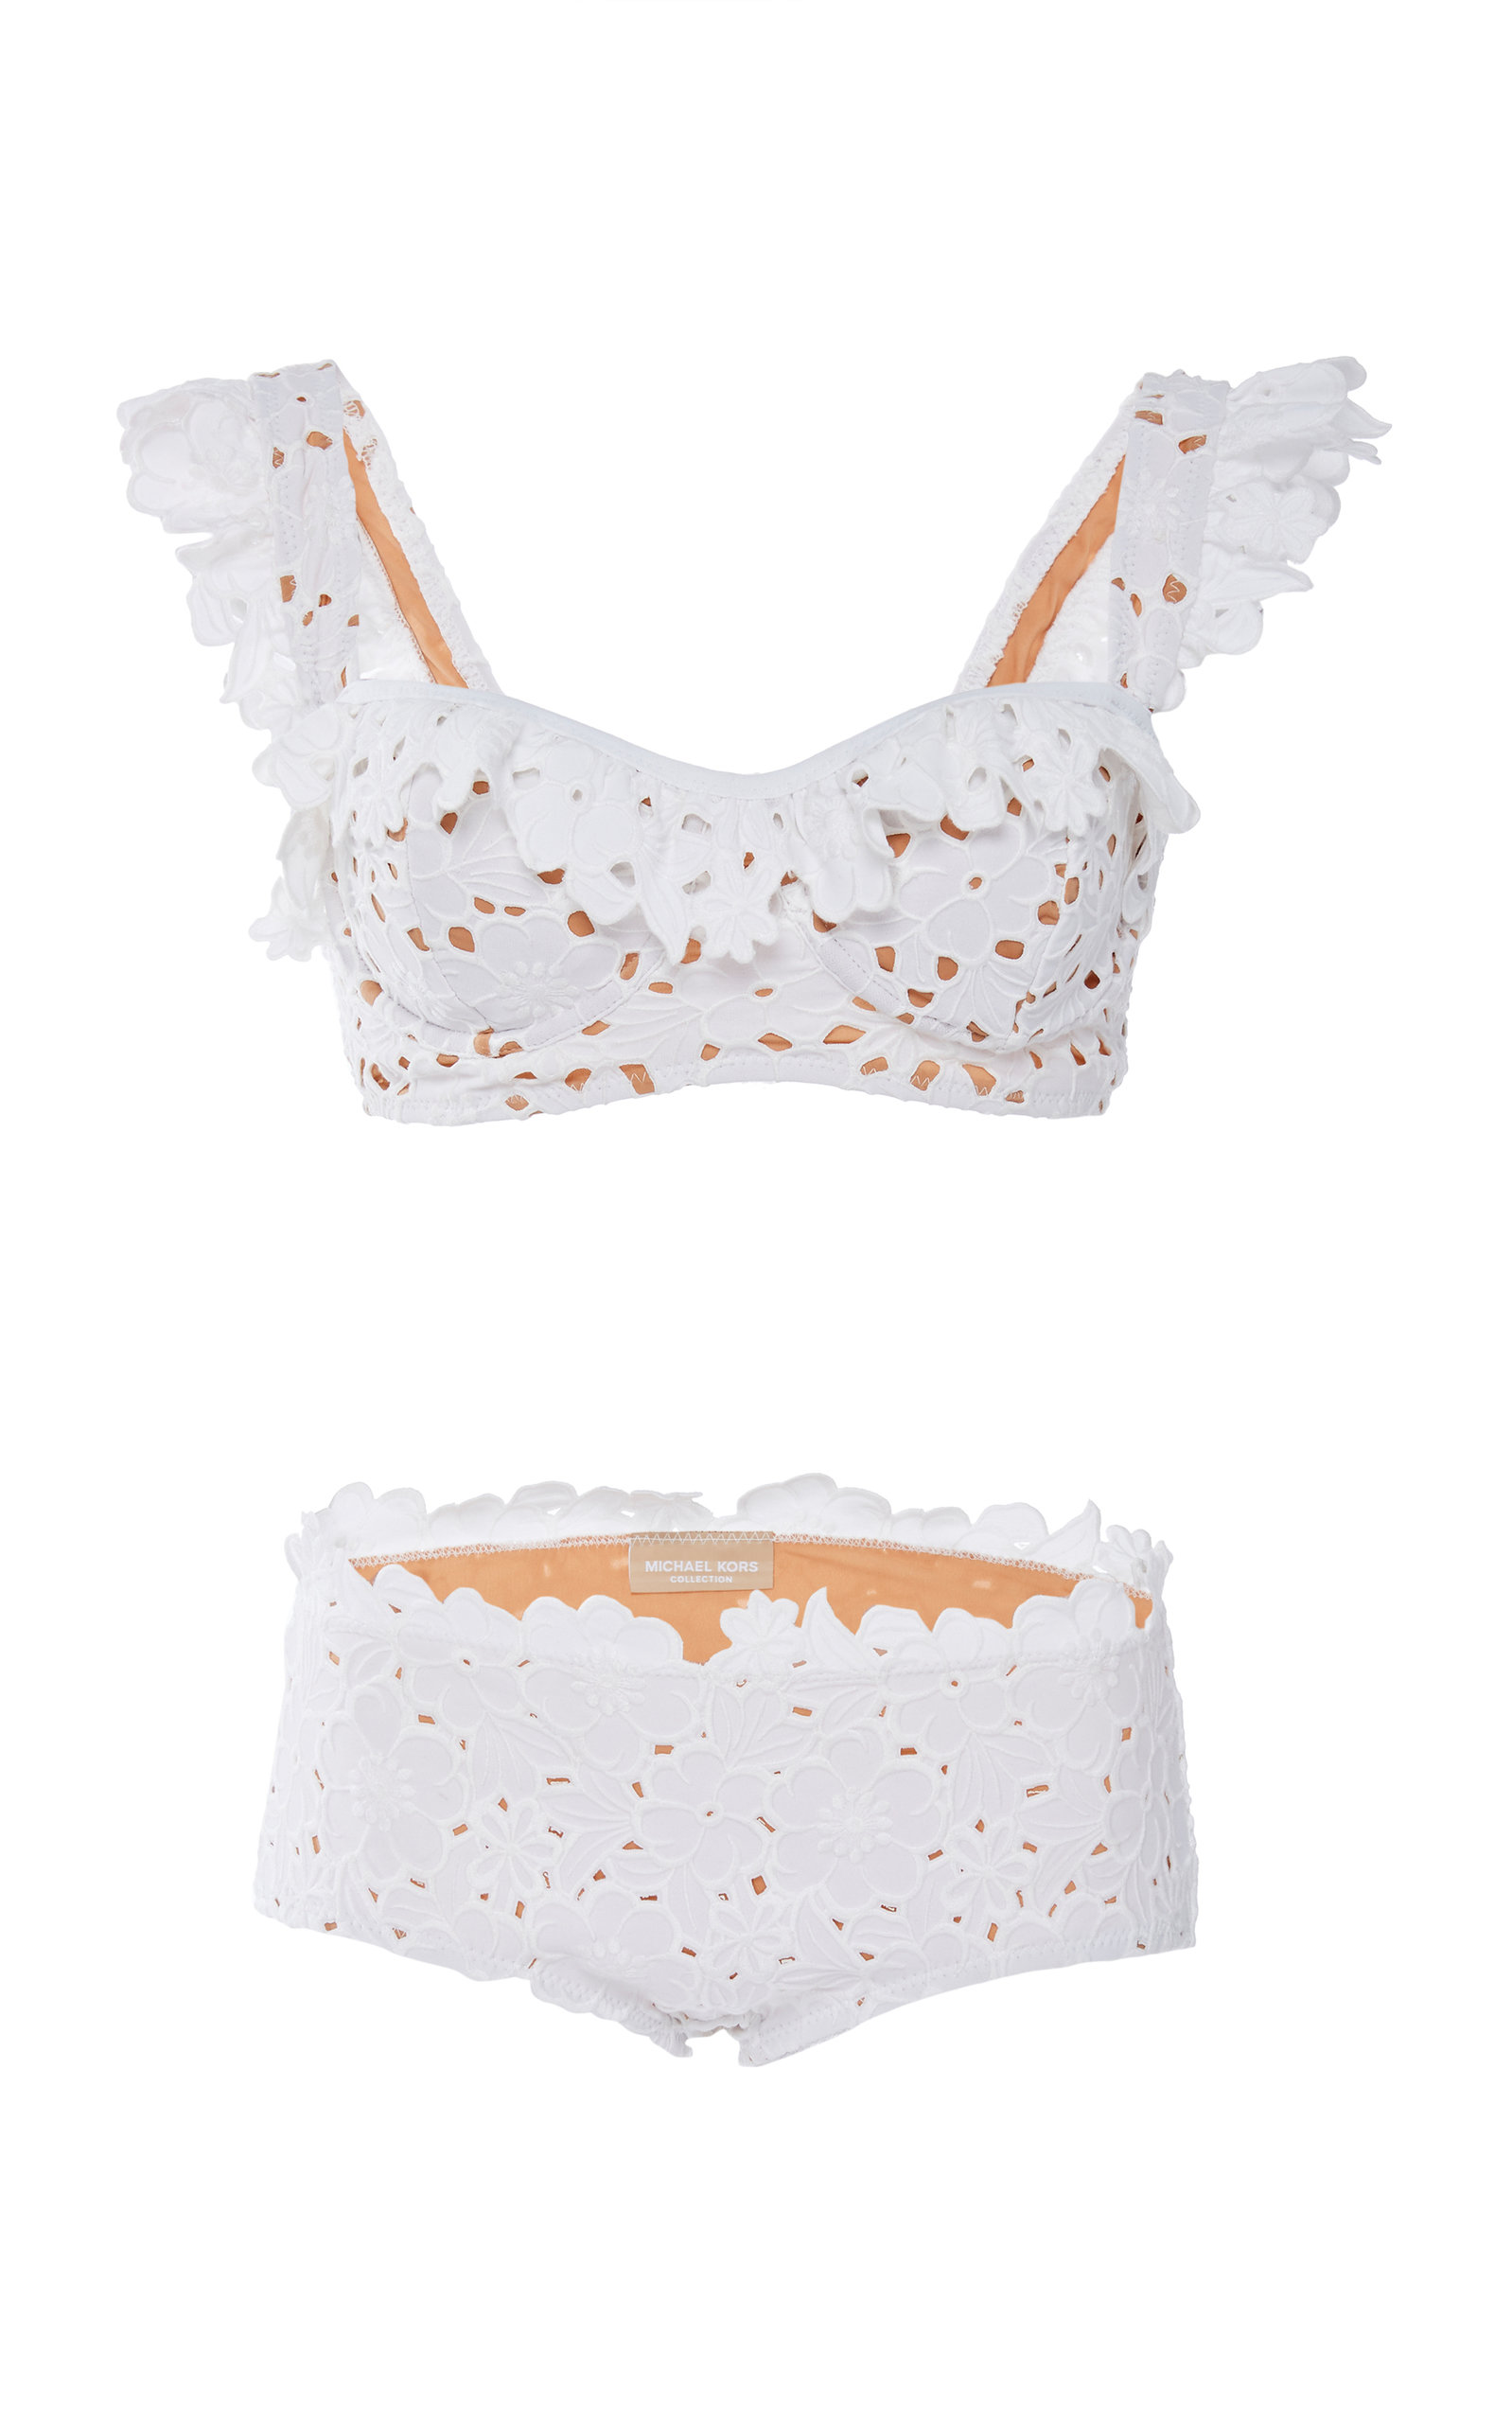 206c3127dd5fa Ruffled Eyelet Bikini Set by Michael Kors Collection | Moda Operandi